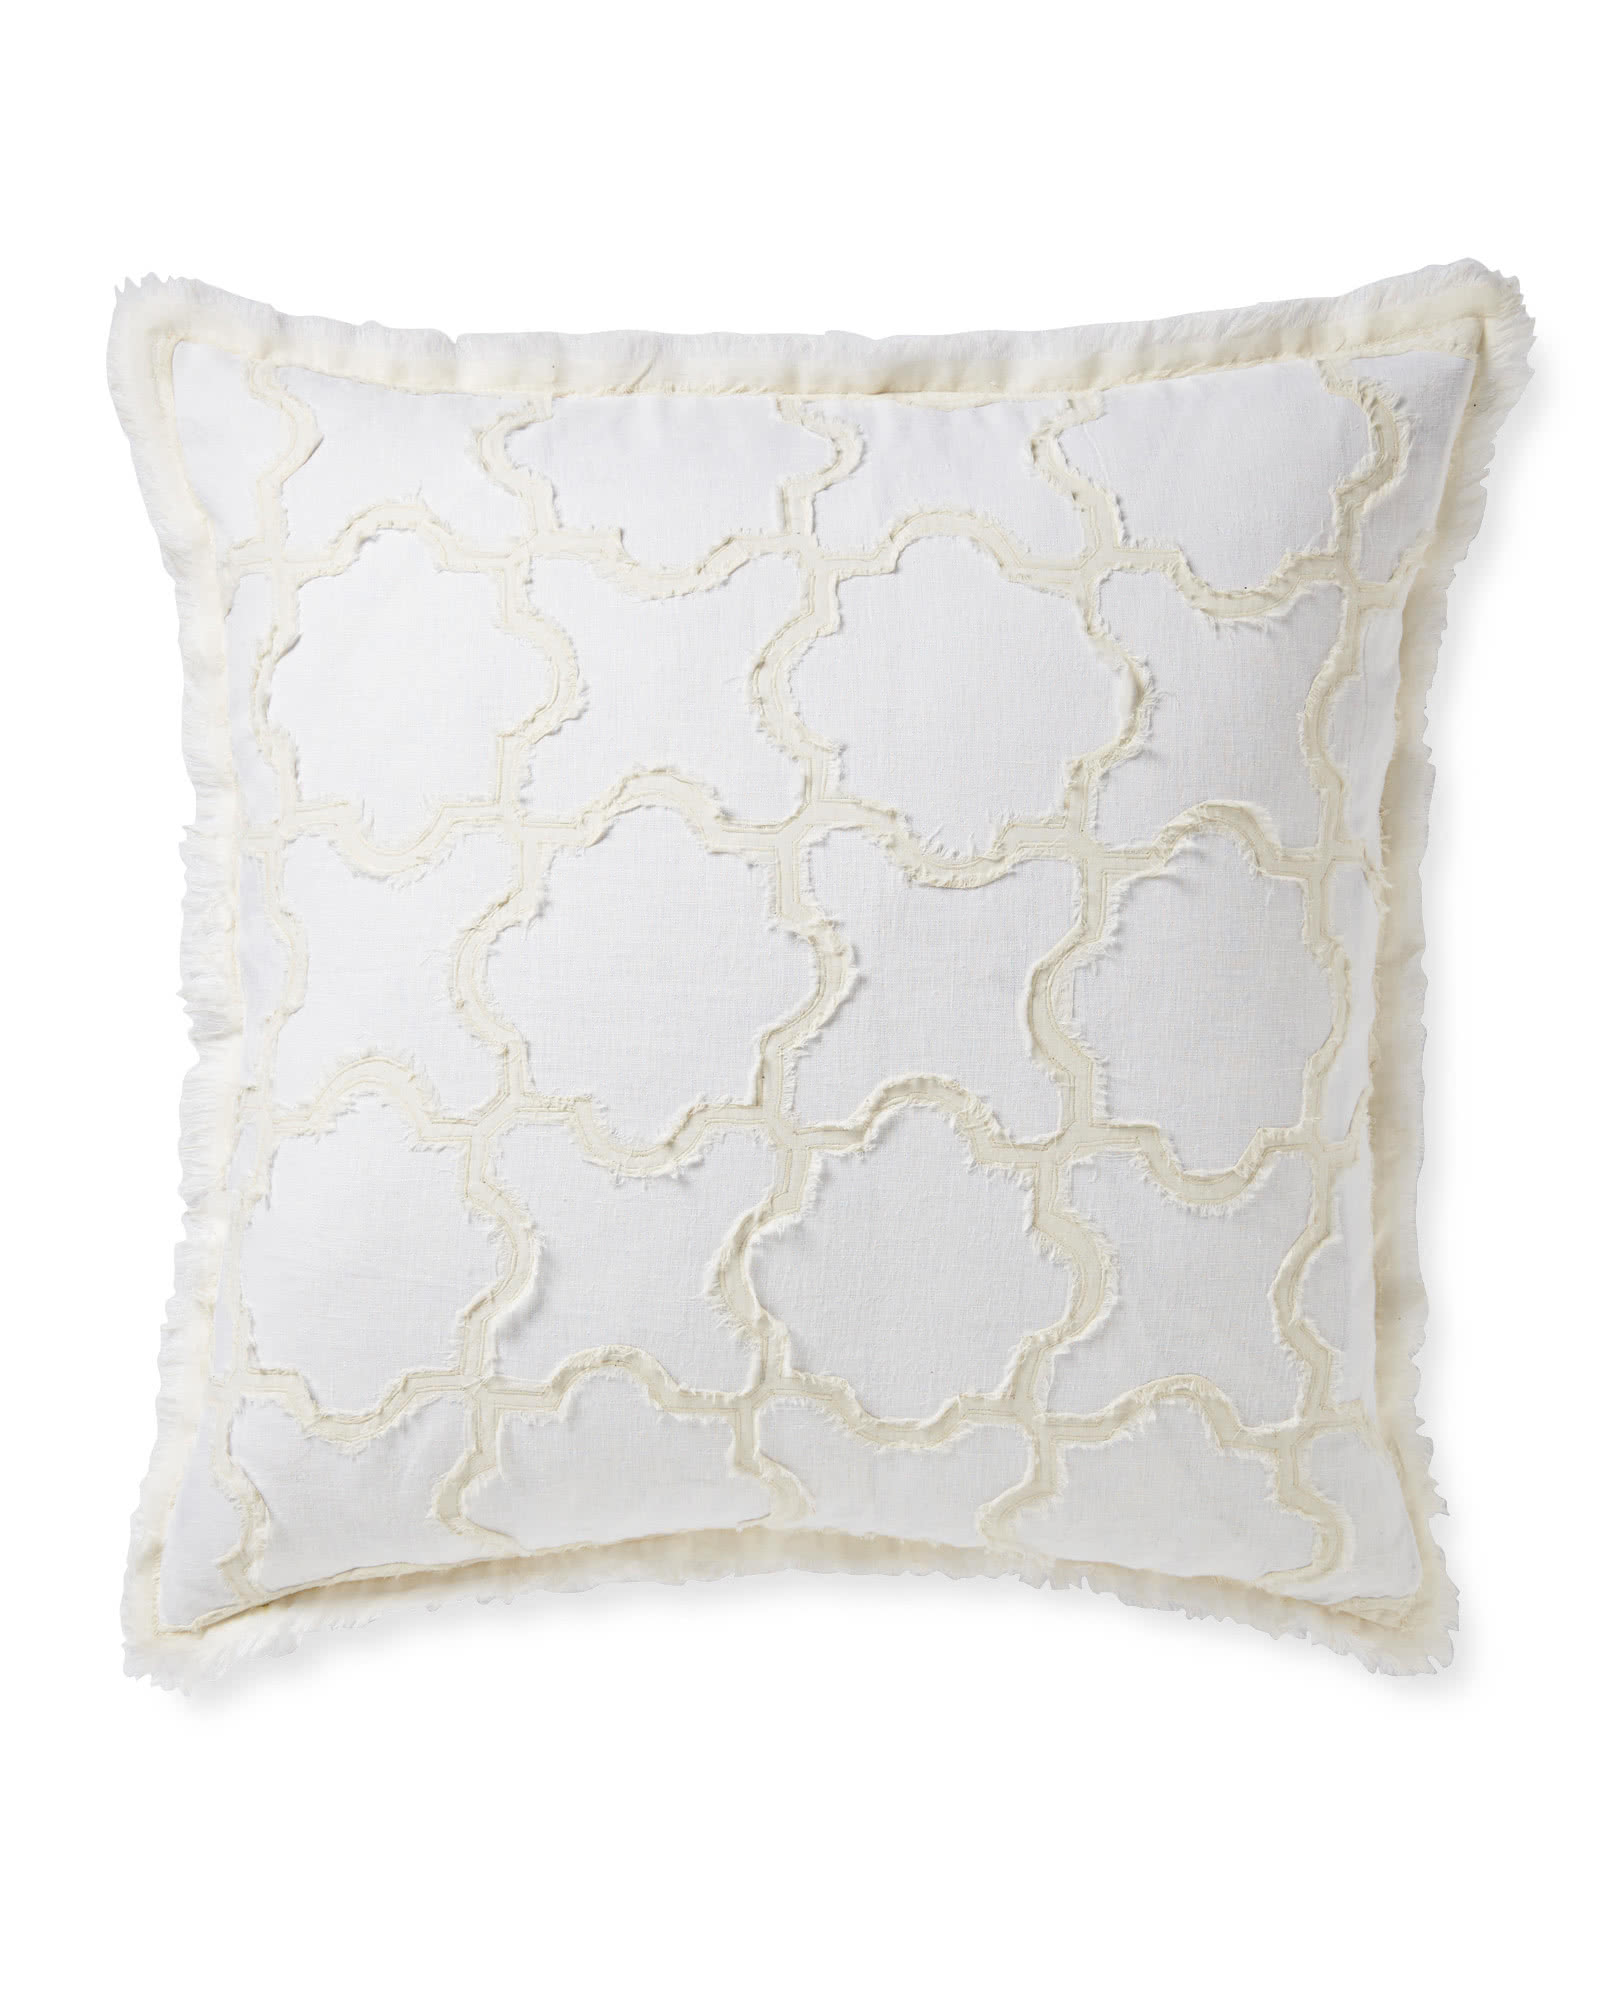 Barcelona Pillow Cover, White/Ivory